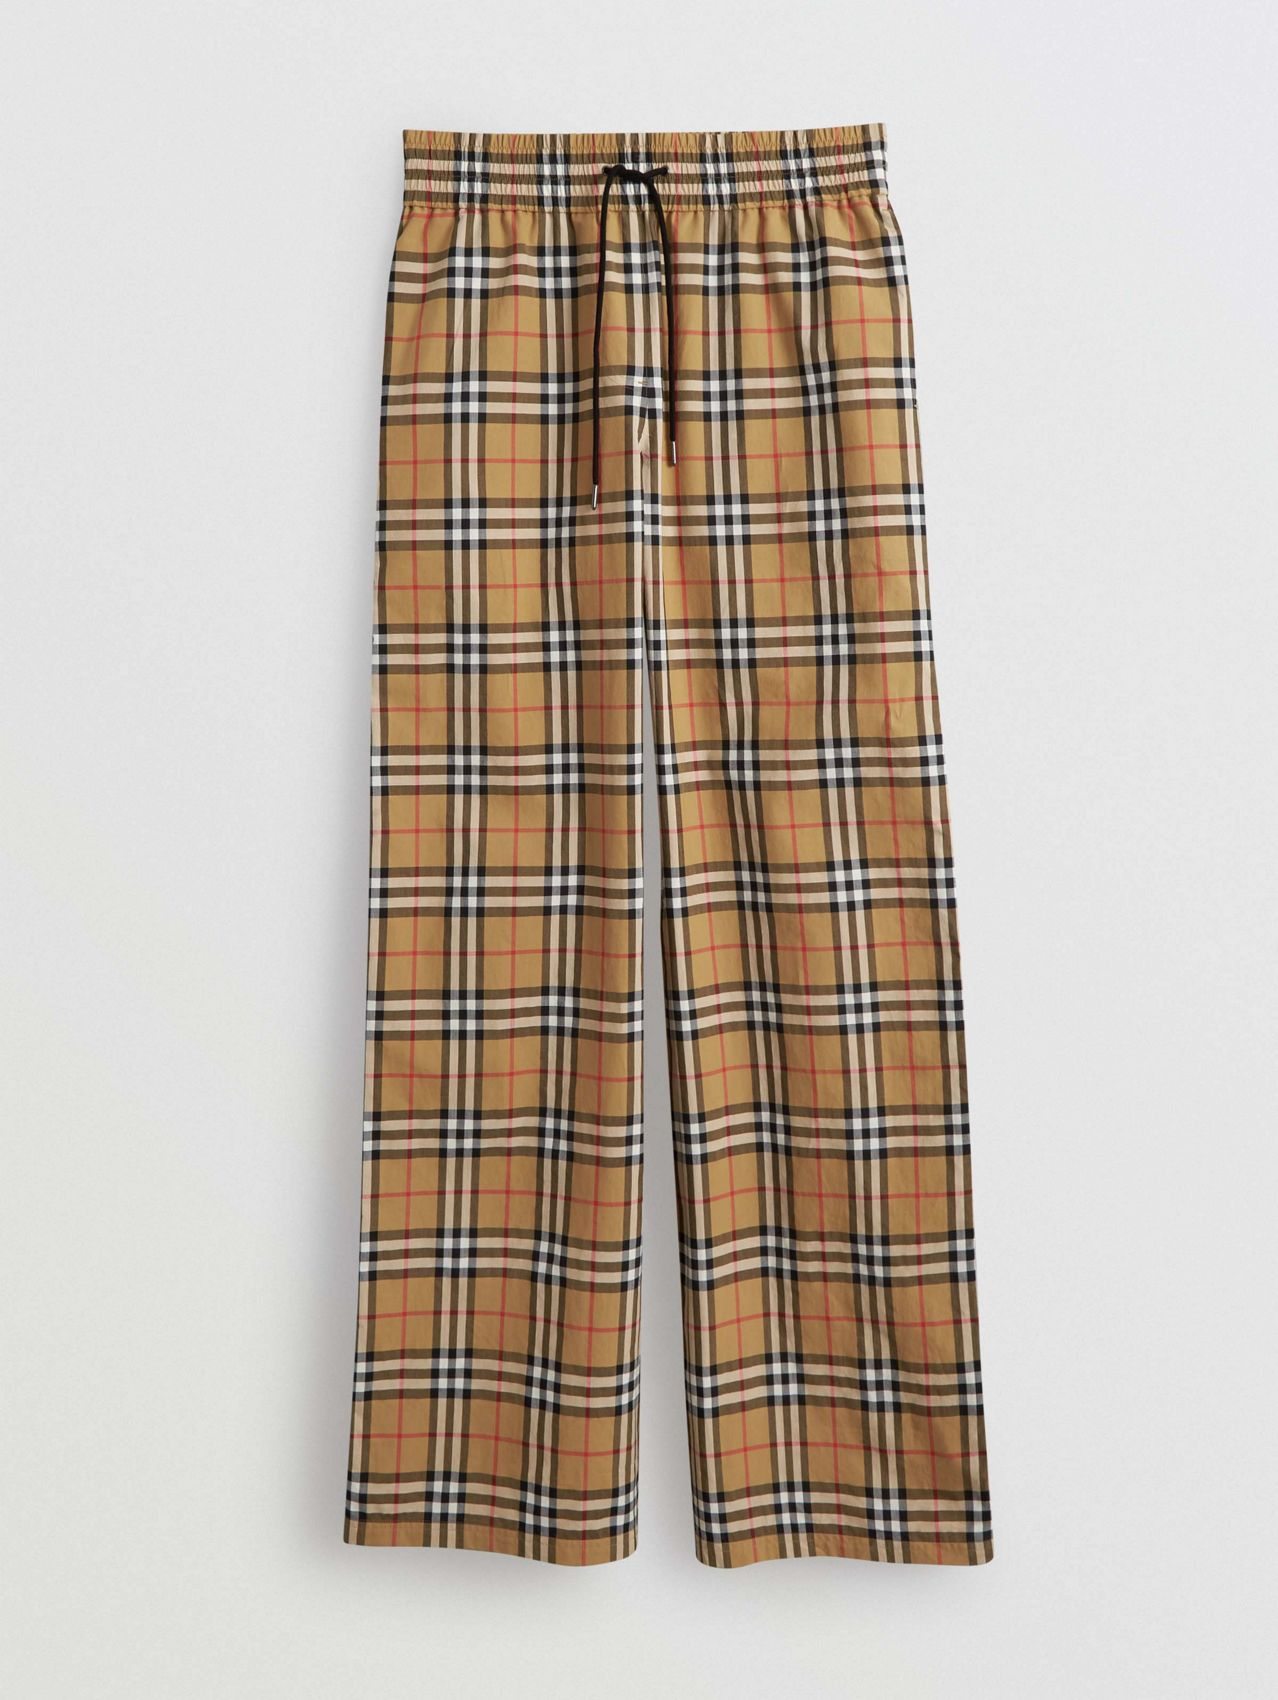 Satin Trim Vintage Check Cotton Trousers in Antique Yellow